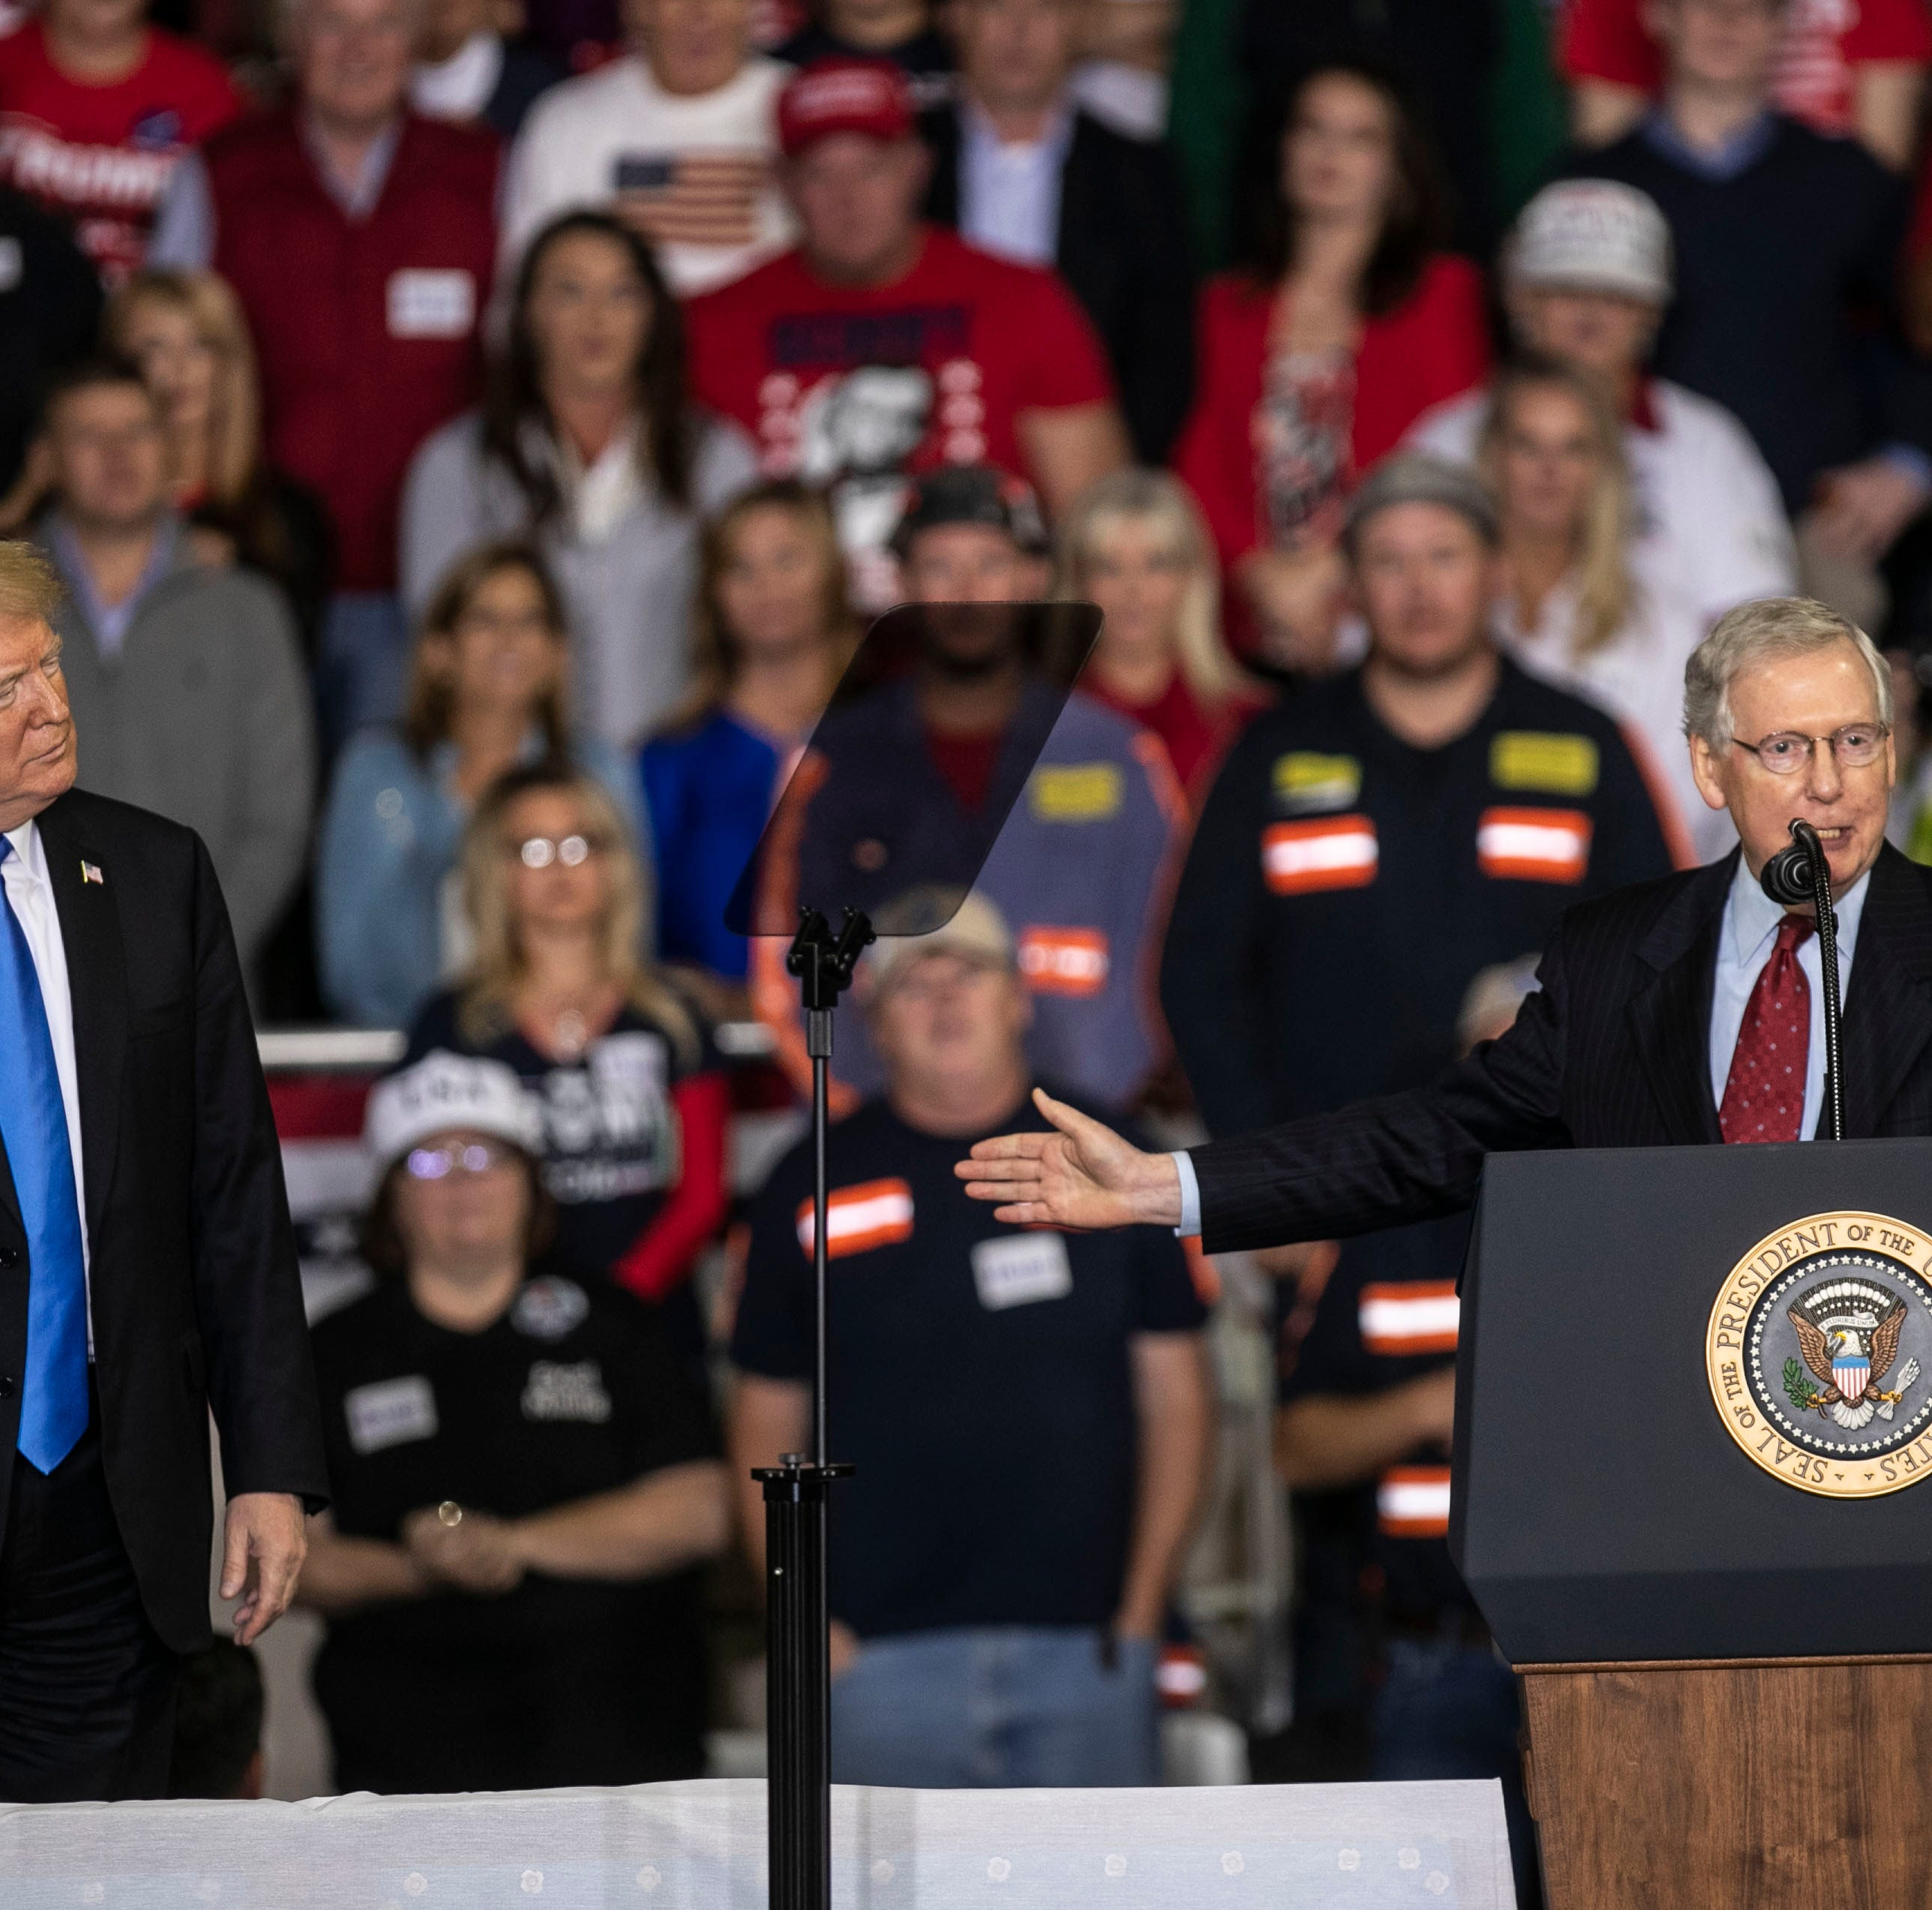 President Donald Trump shared the stage with Senate Majority Leader Mitch McConnell during the rally on the Eastern Kentucky University campus Saturday night.